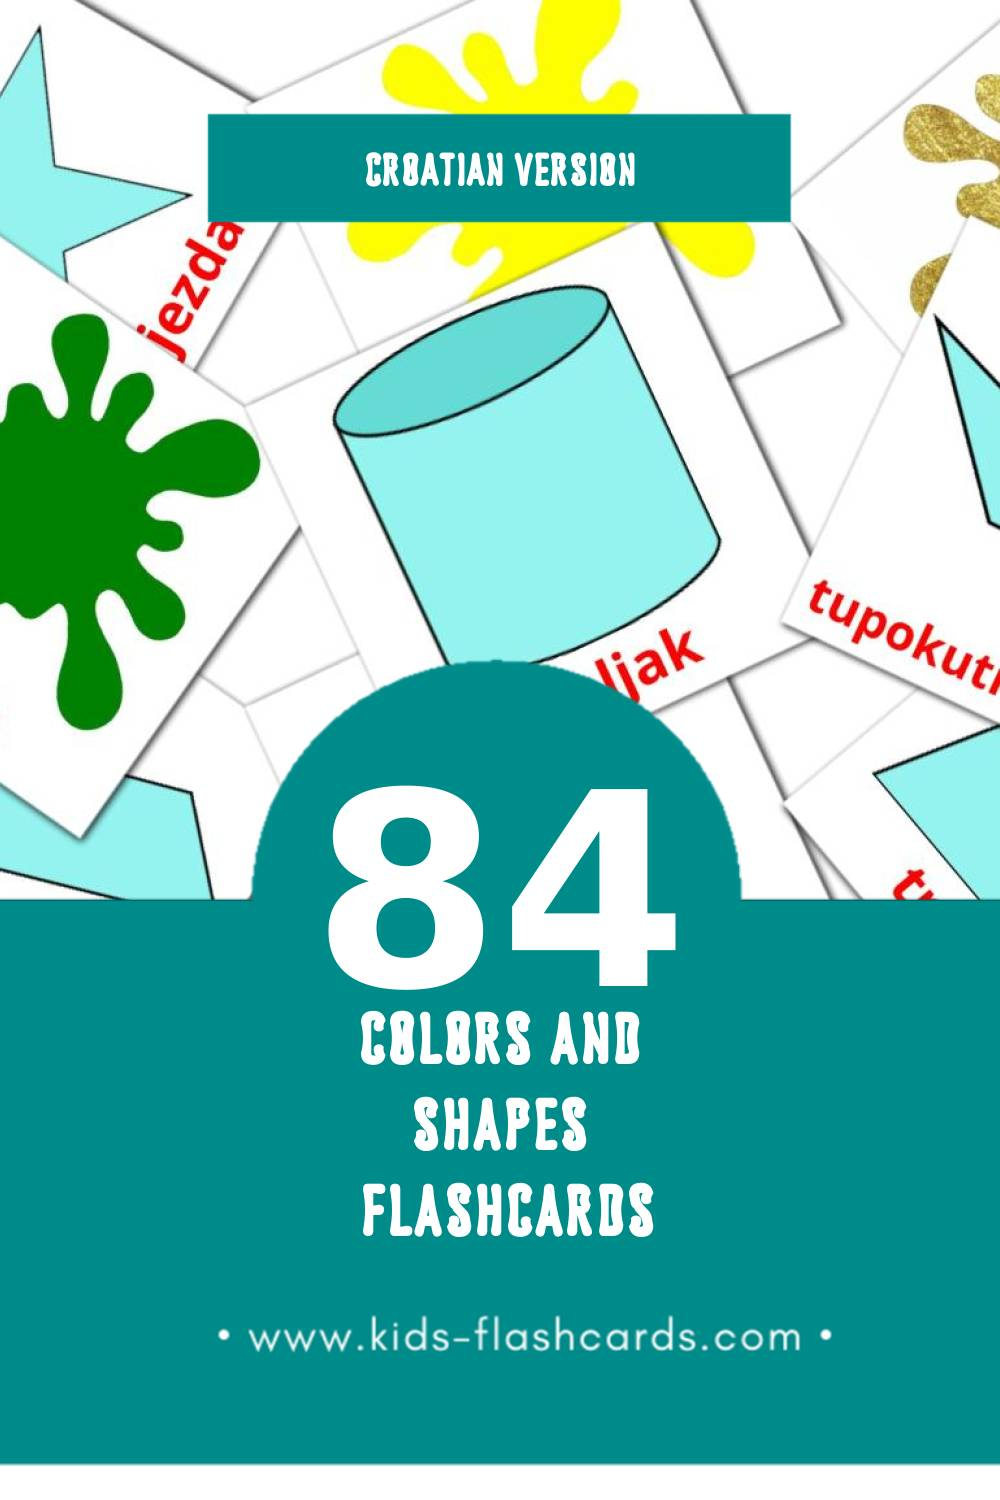 Visual Boje i oblici Flashcards for Toddlers (84 cards in Croatian)